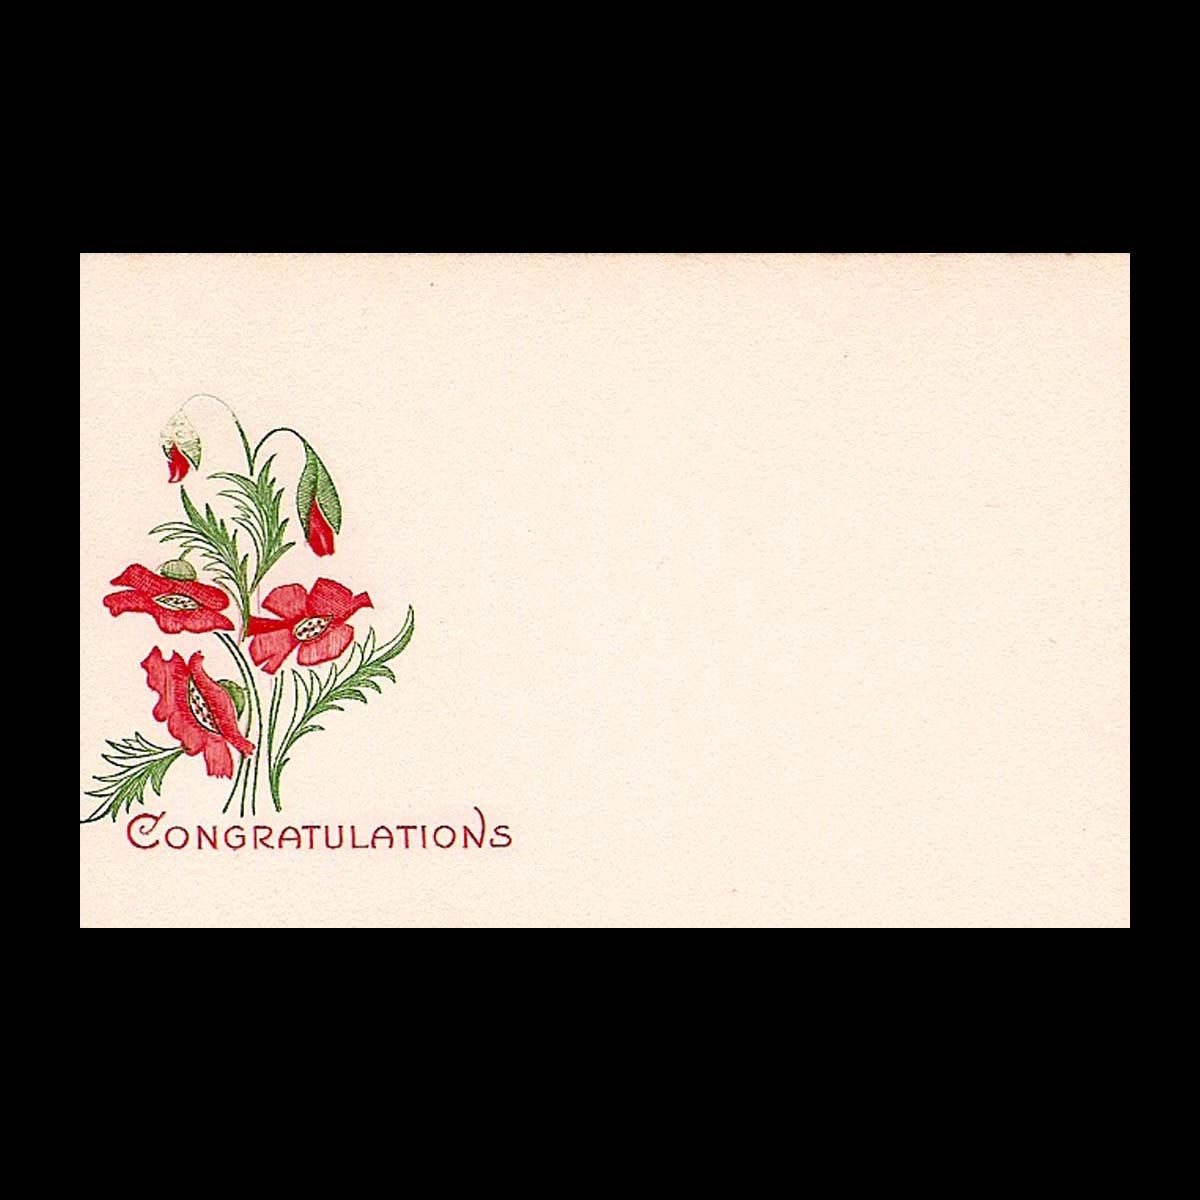 Vintage Floral Shop Gift Tags And Greetings To Your Success And